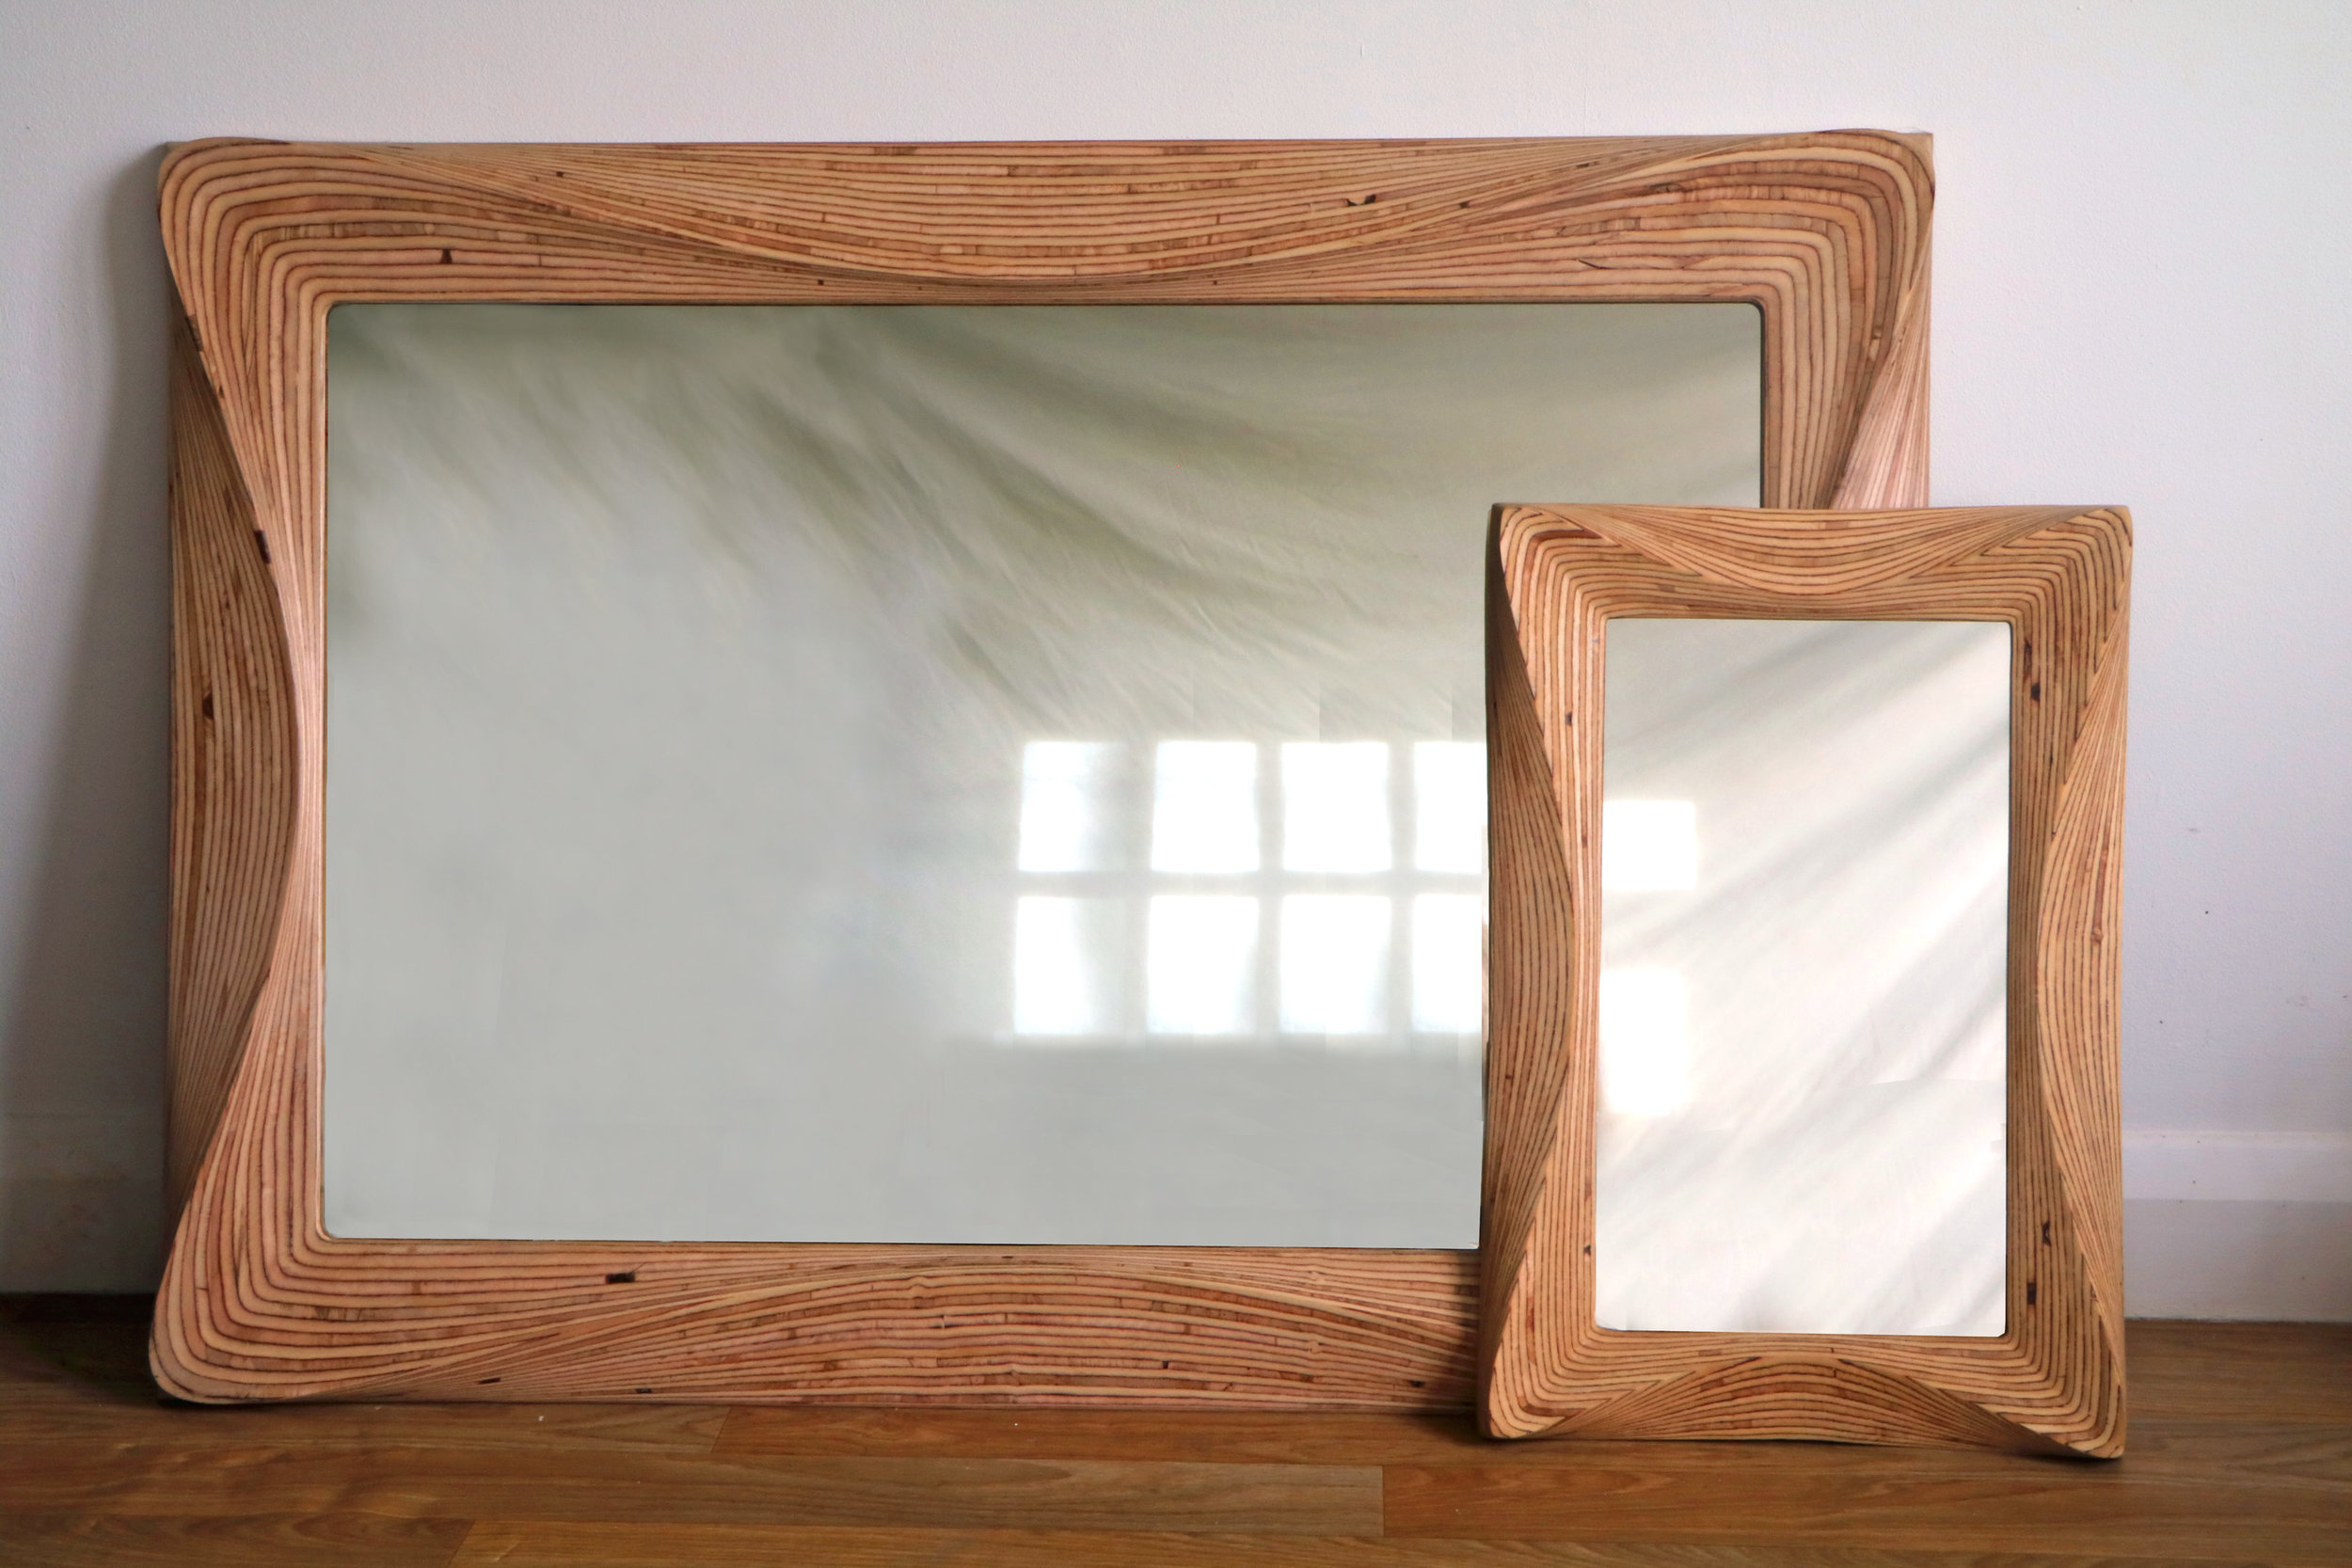 SurreyWoodsmiths wooden mirror